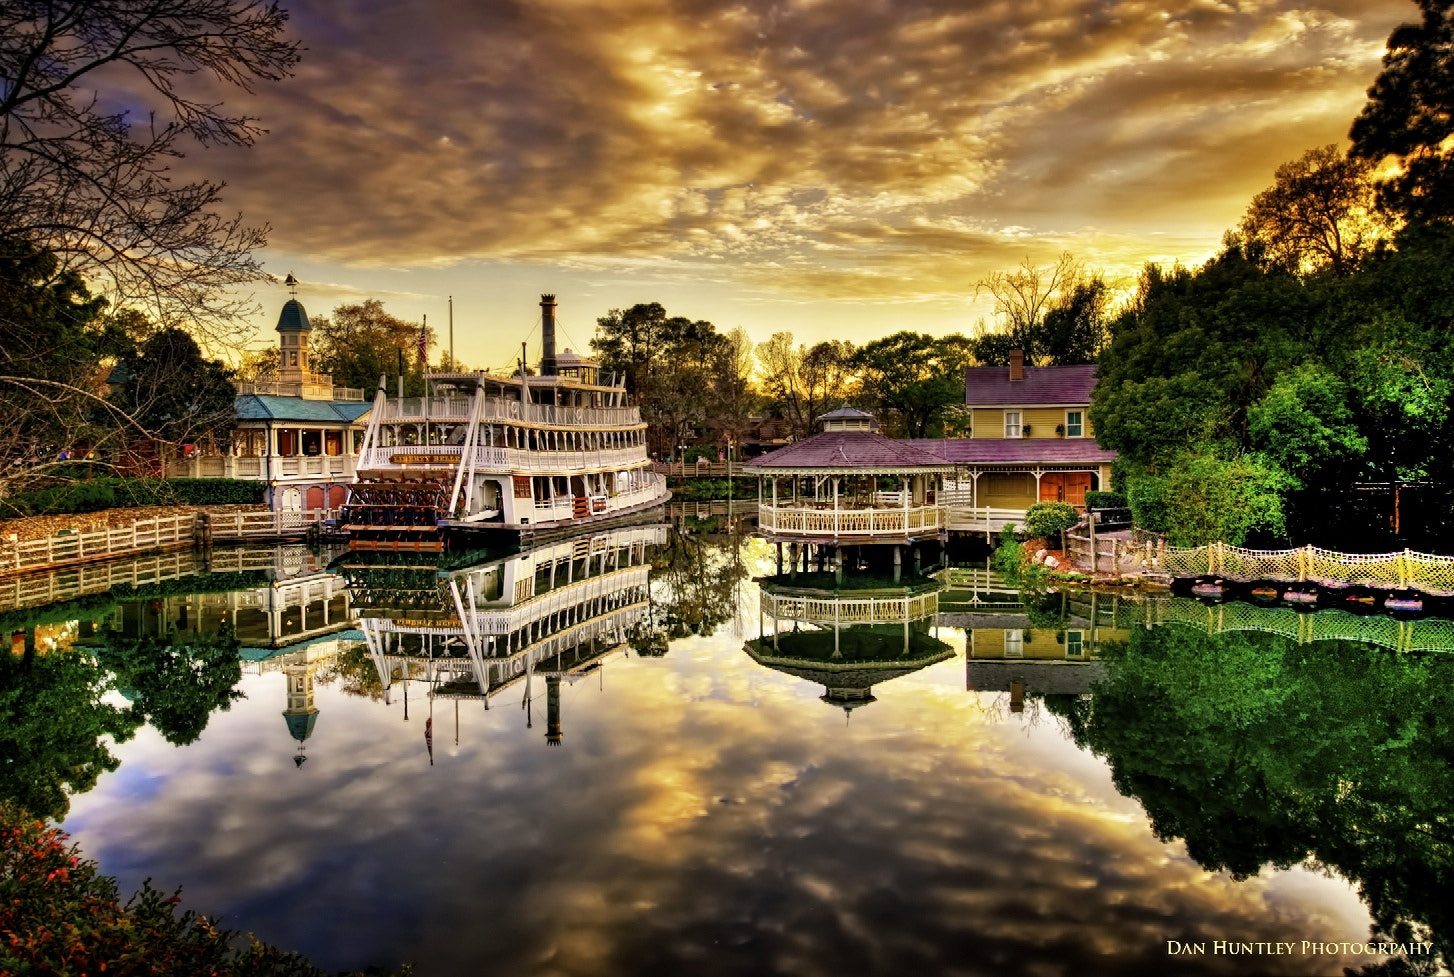 Sunset over Frontierland